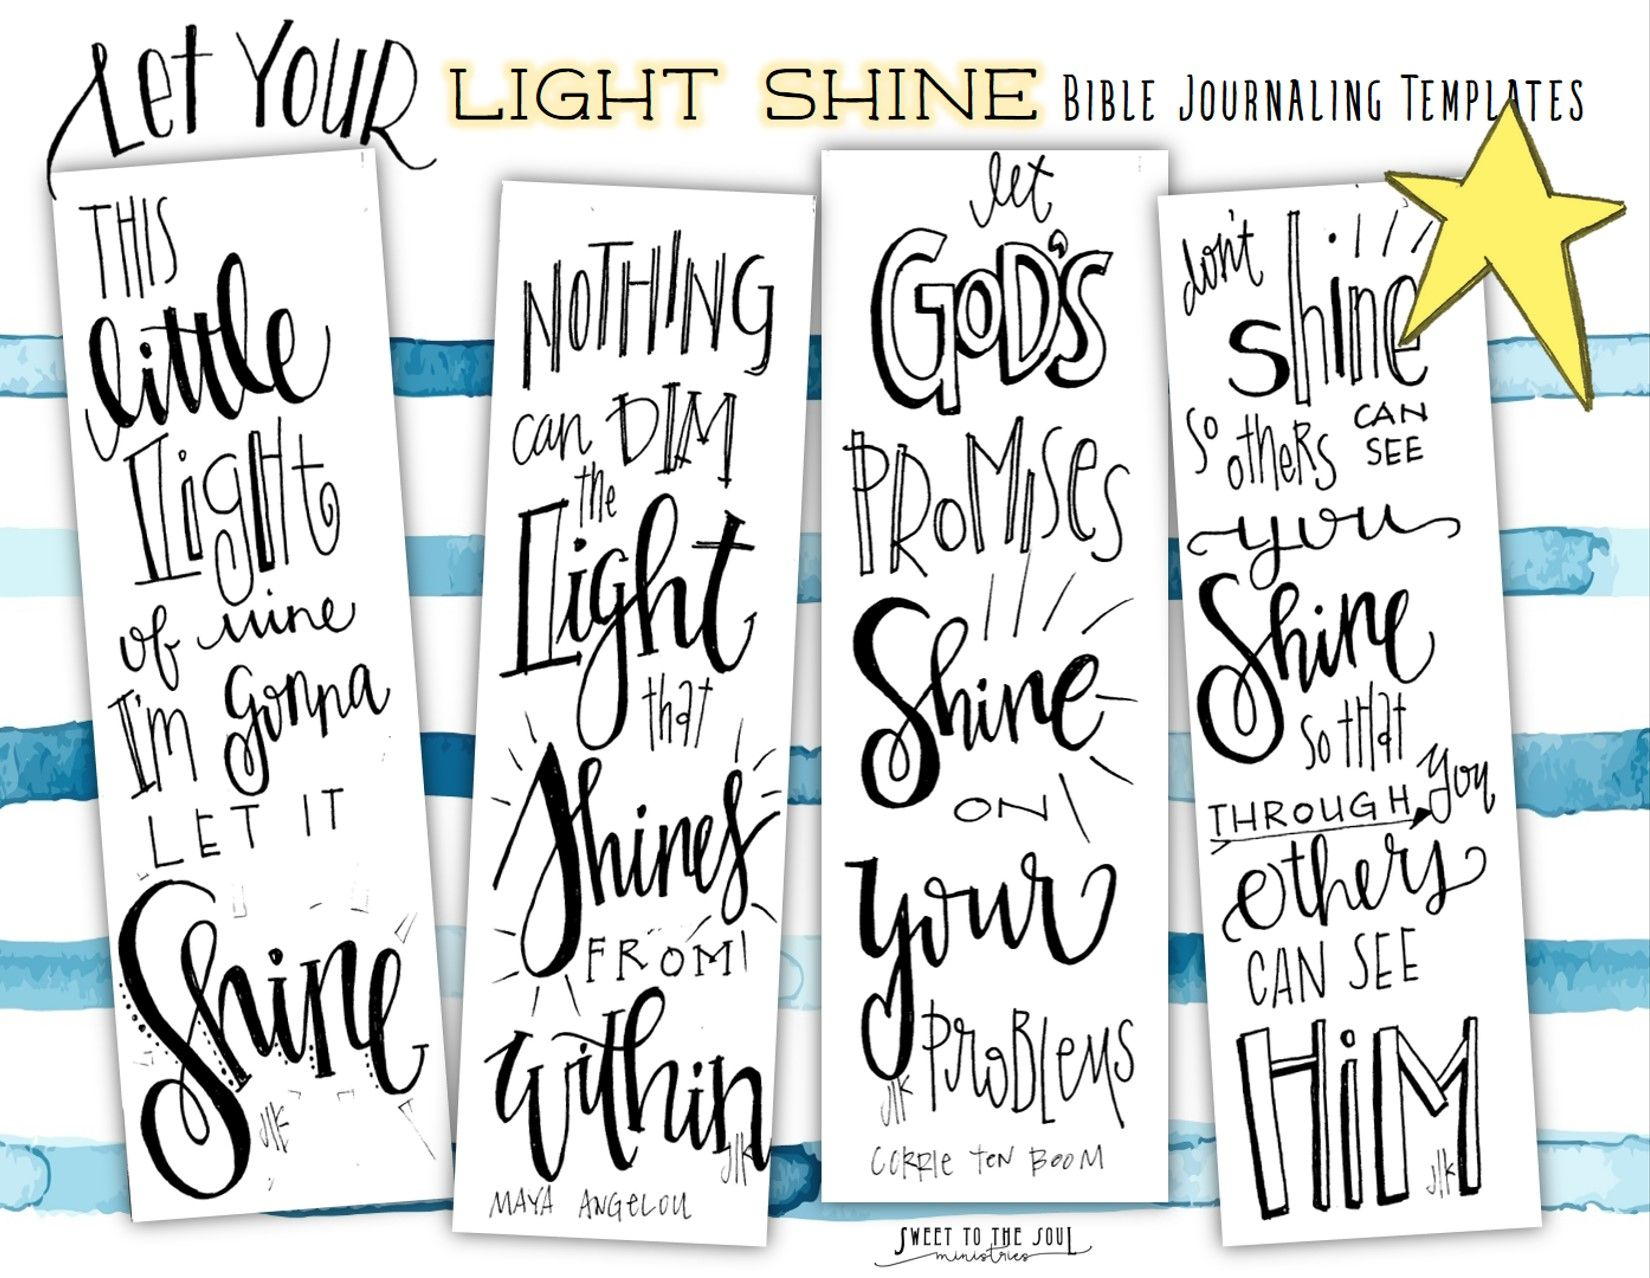 Pin On Let Your Light Shine